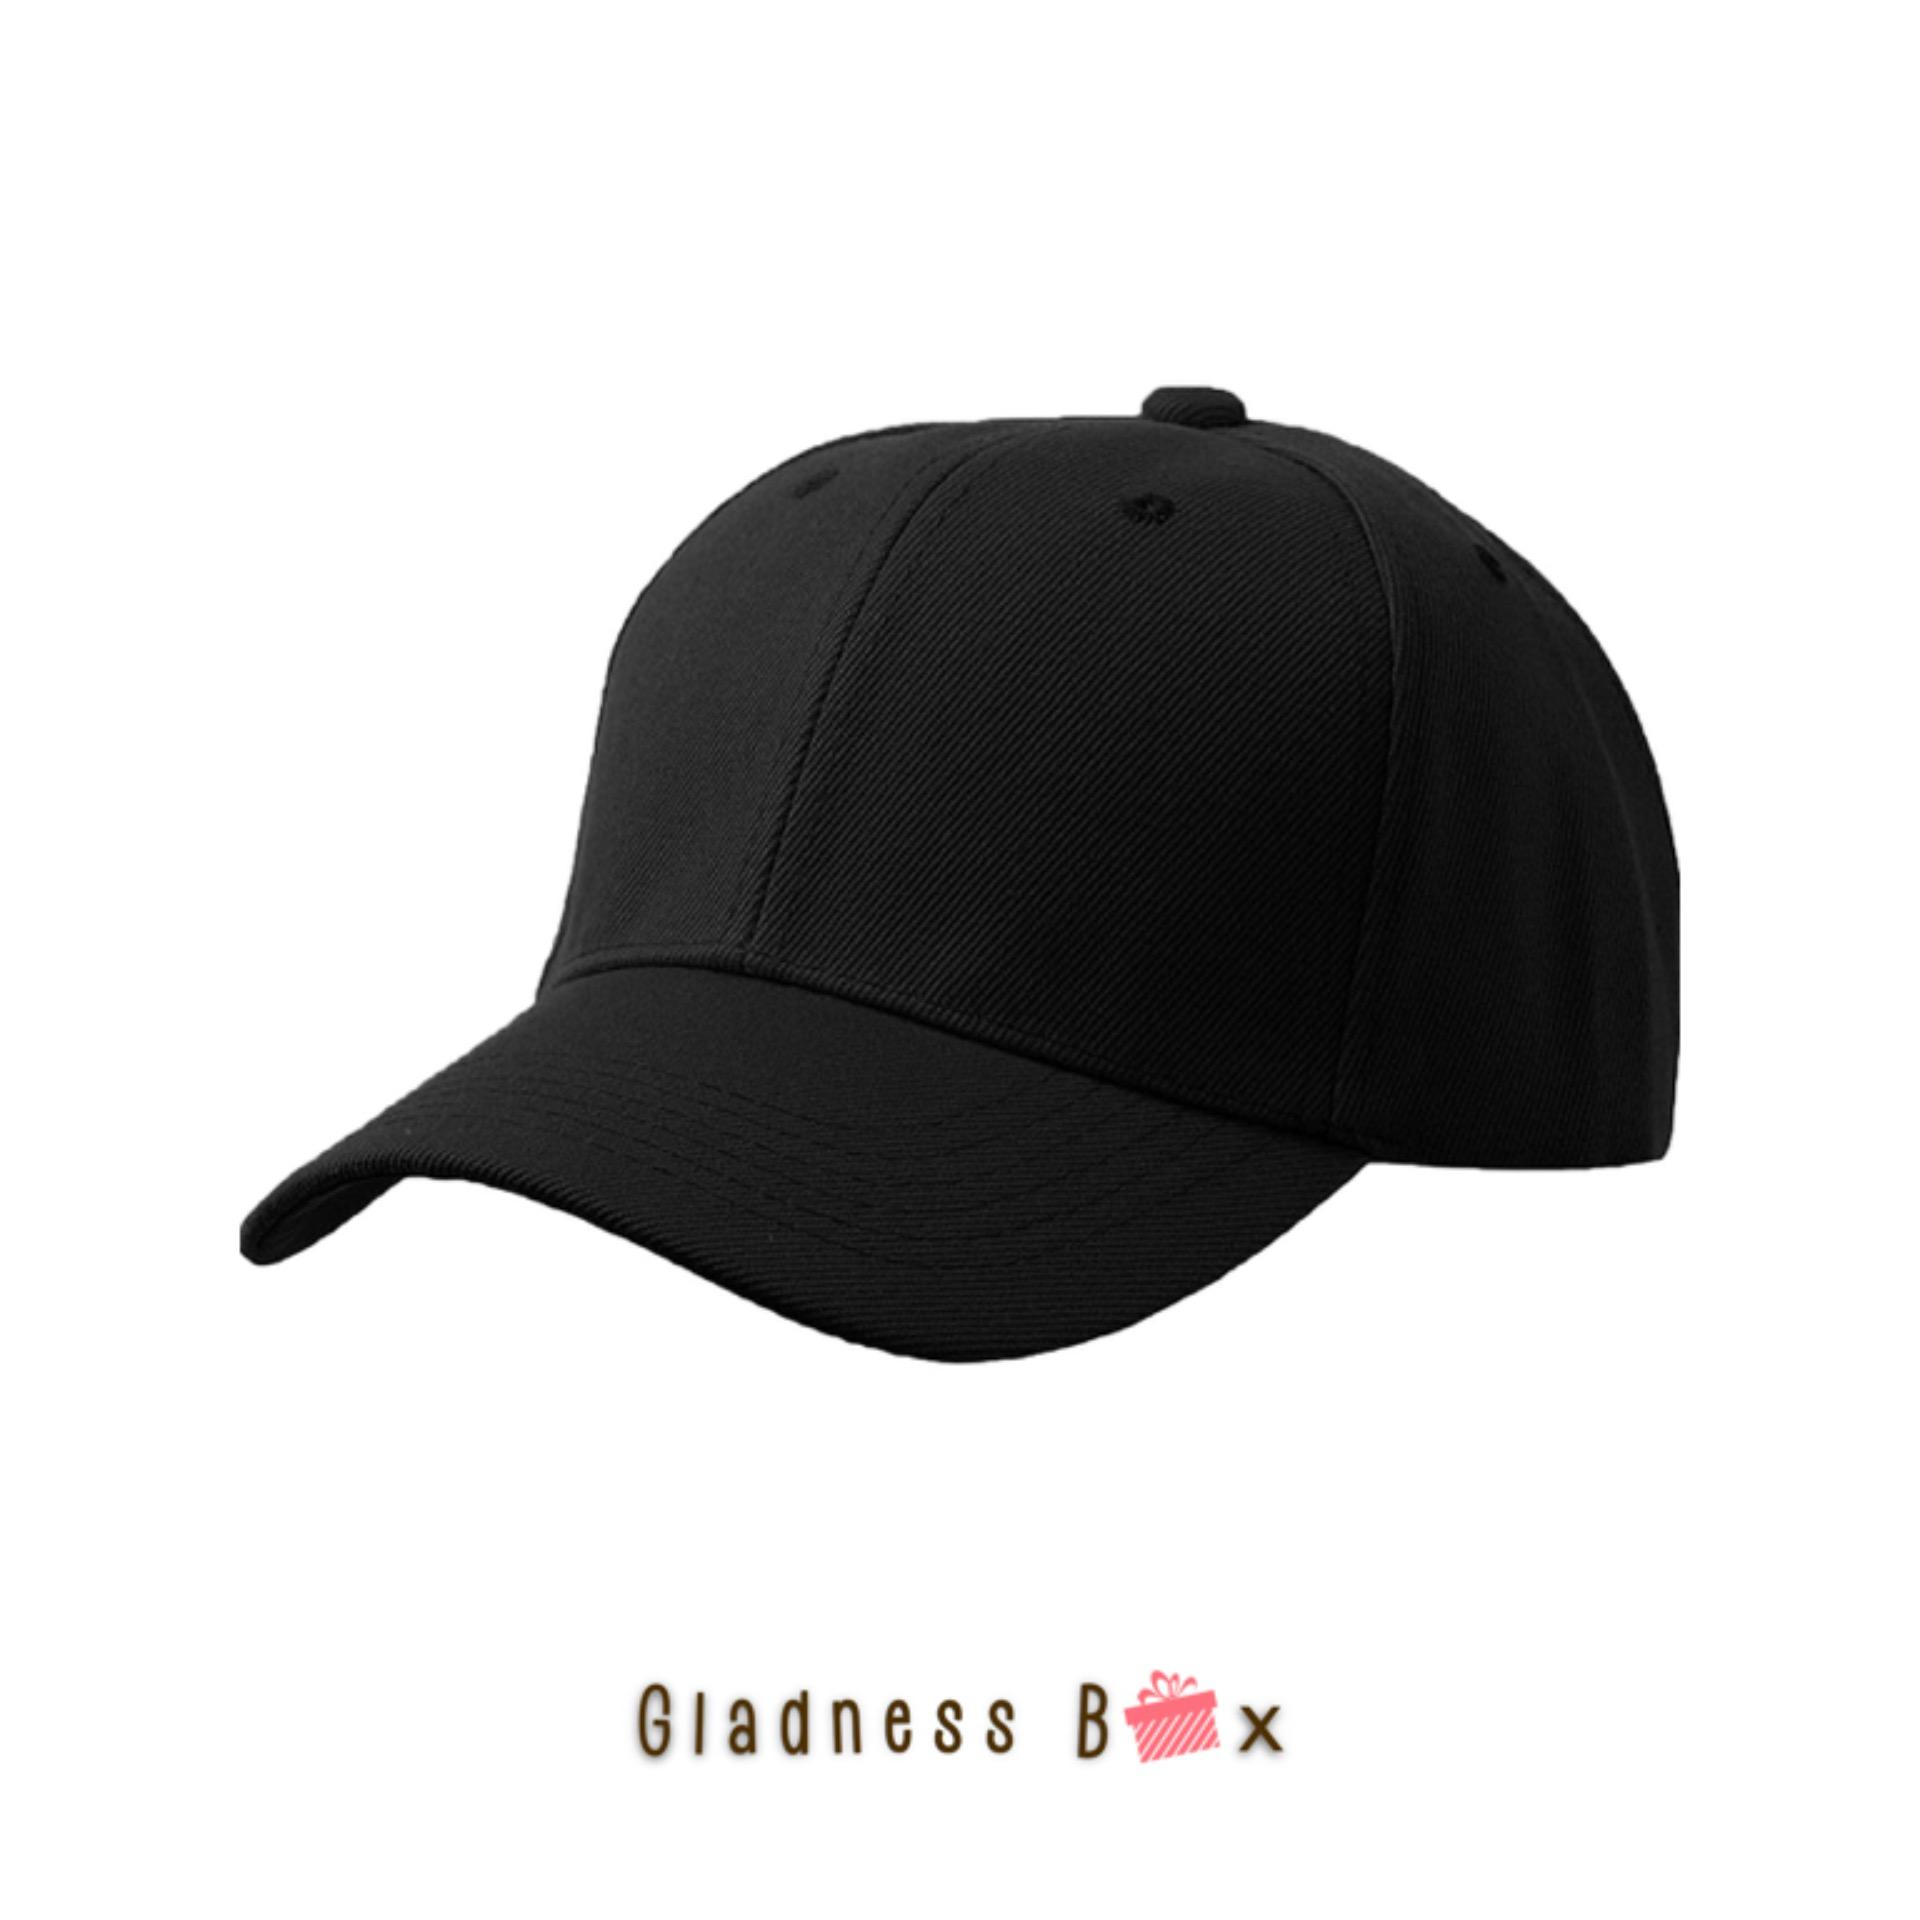 d15a0de941f Gladness Box High Quality Plain Baseball Cap for Men Women Unisex